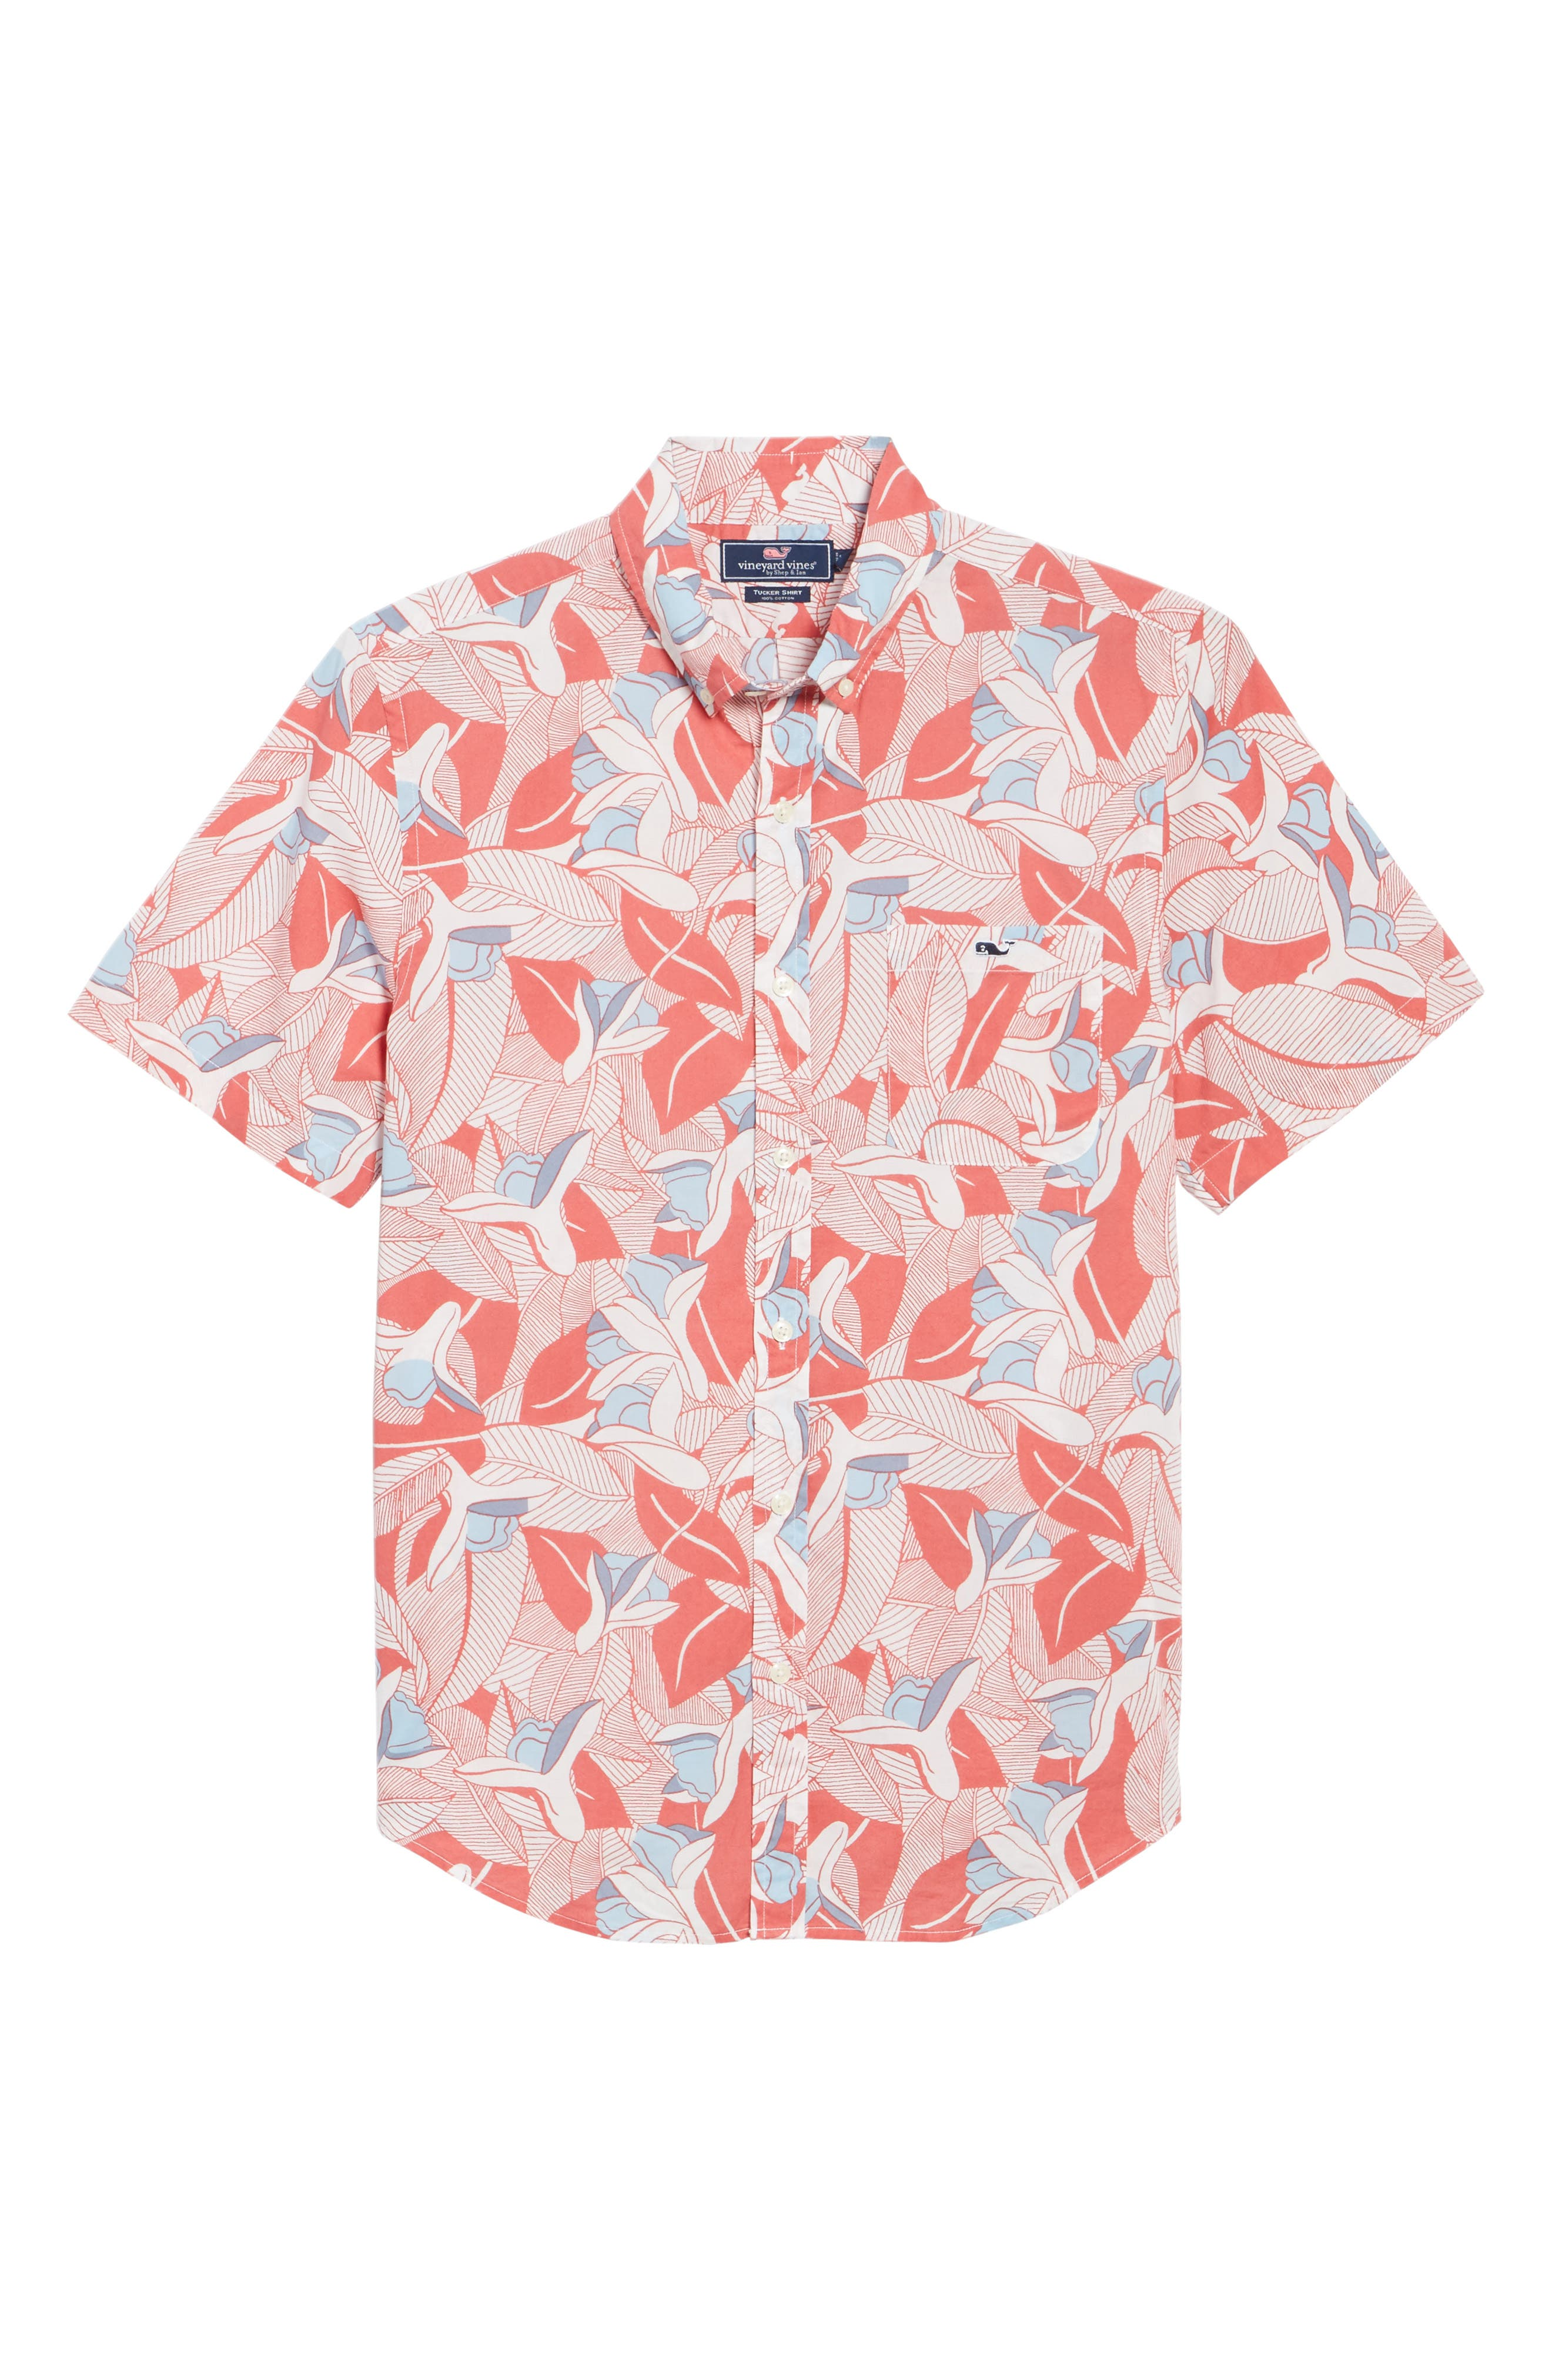 Flowers & Leaves Classic Fit Print Short Sleeve Sport Shirt,                             Alternate thumbnail 6, color,                             Jetty Red